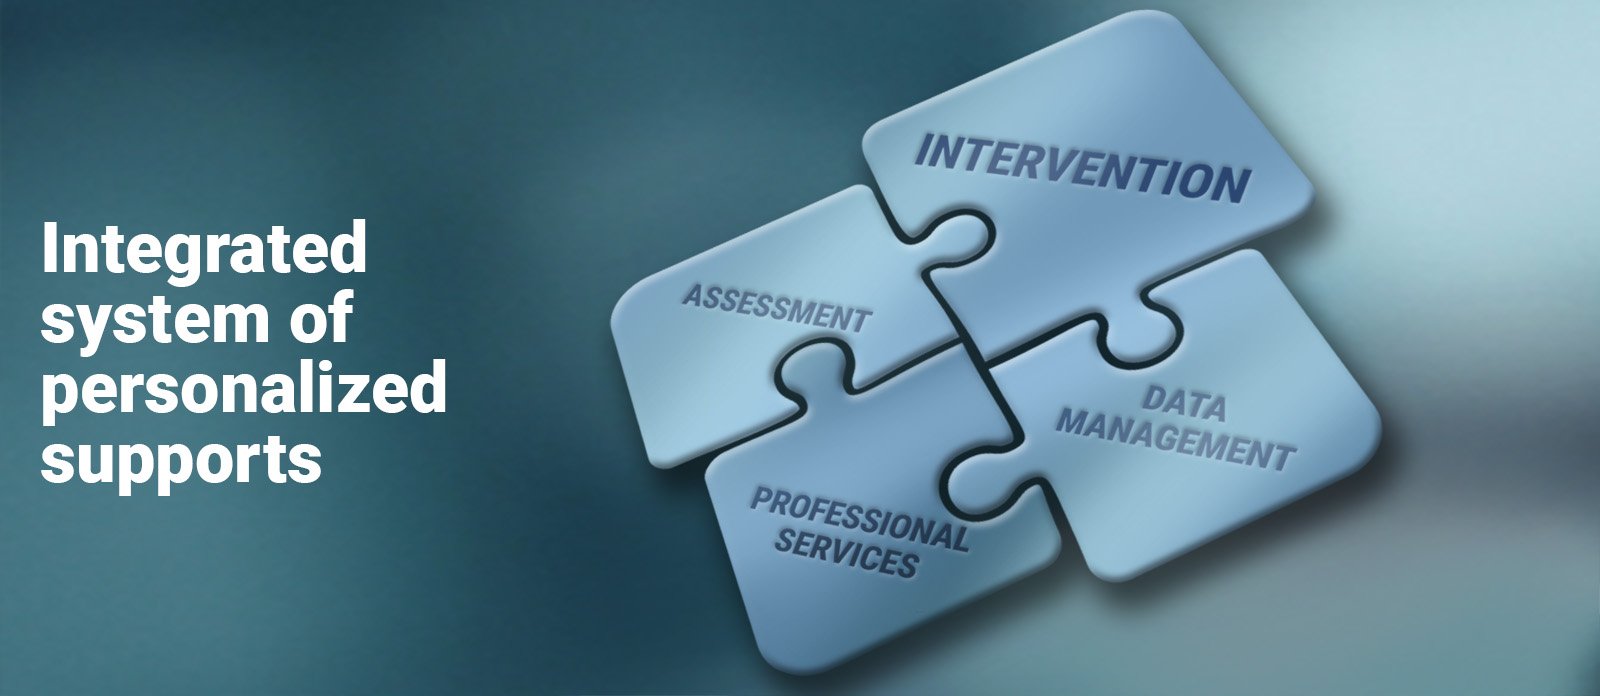 The banner image for the Tools page, which symbolizes the connection between intervention, data management, professional services, and assessment as puzzle pieces fitting together.